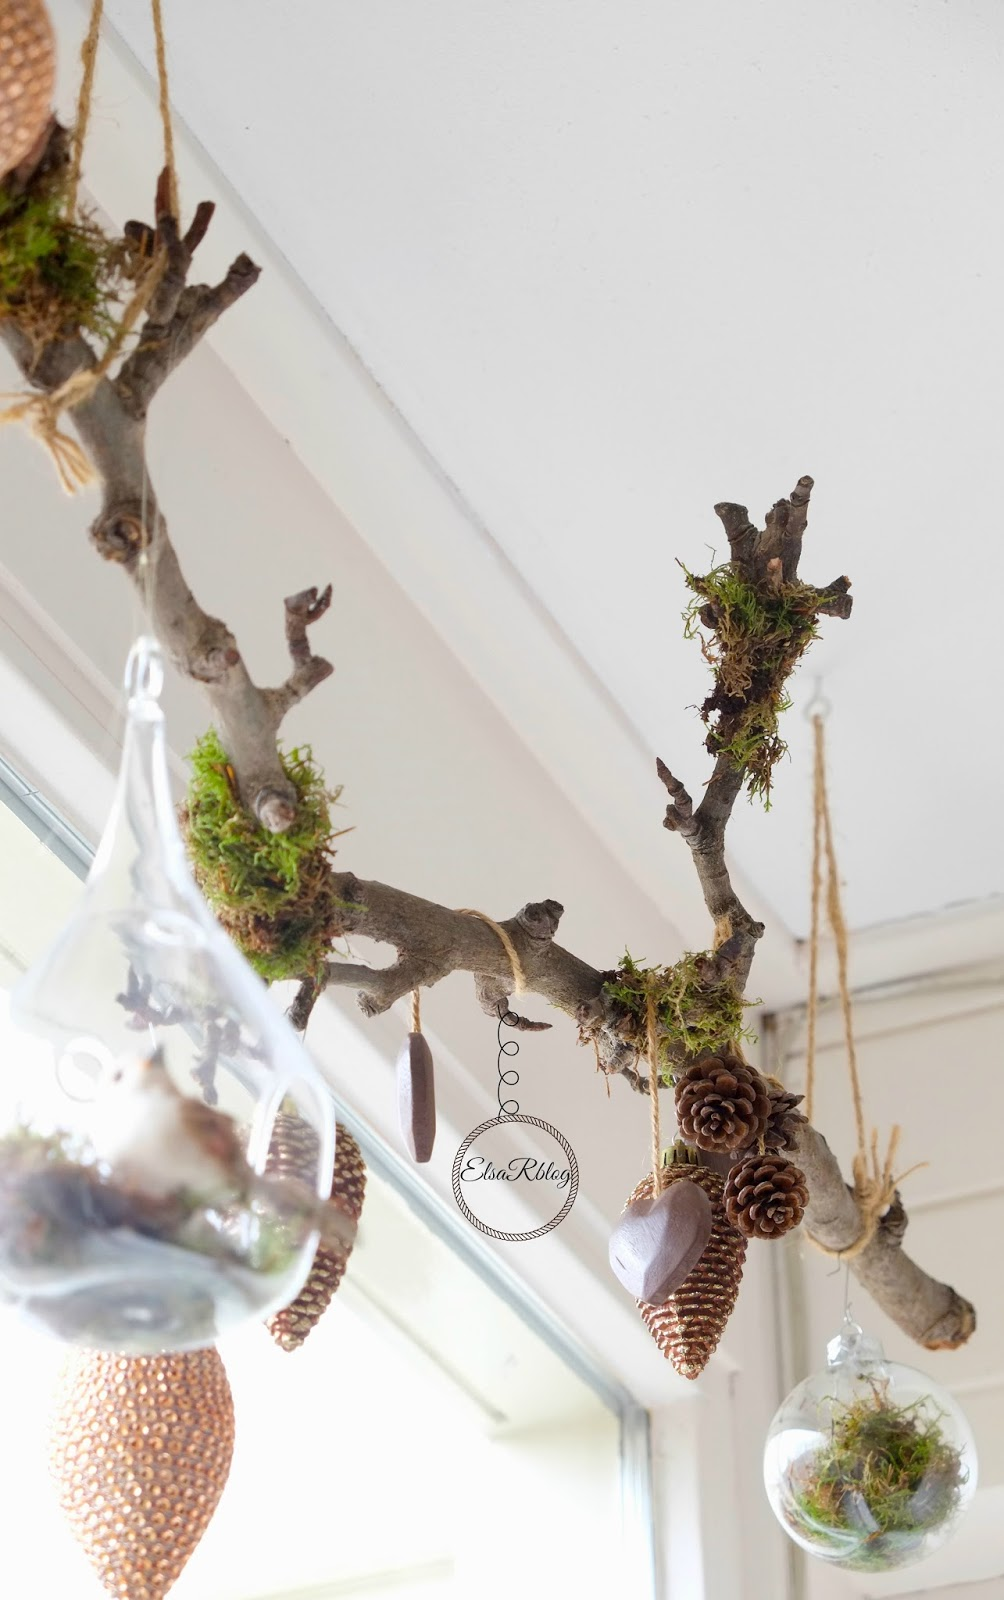 Winter branch decorating by Elsa R Blog, featured on DIY Salvaged Junk Projects 549 on Funky Junk!